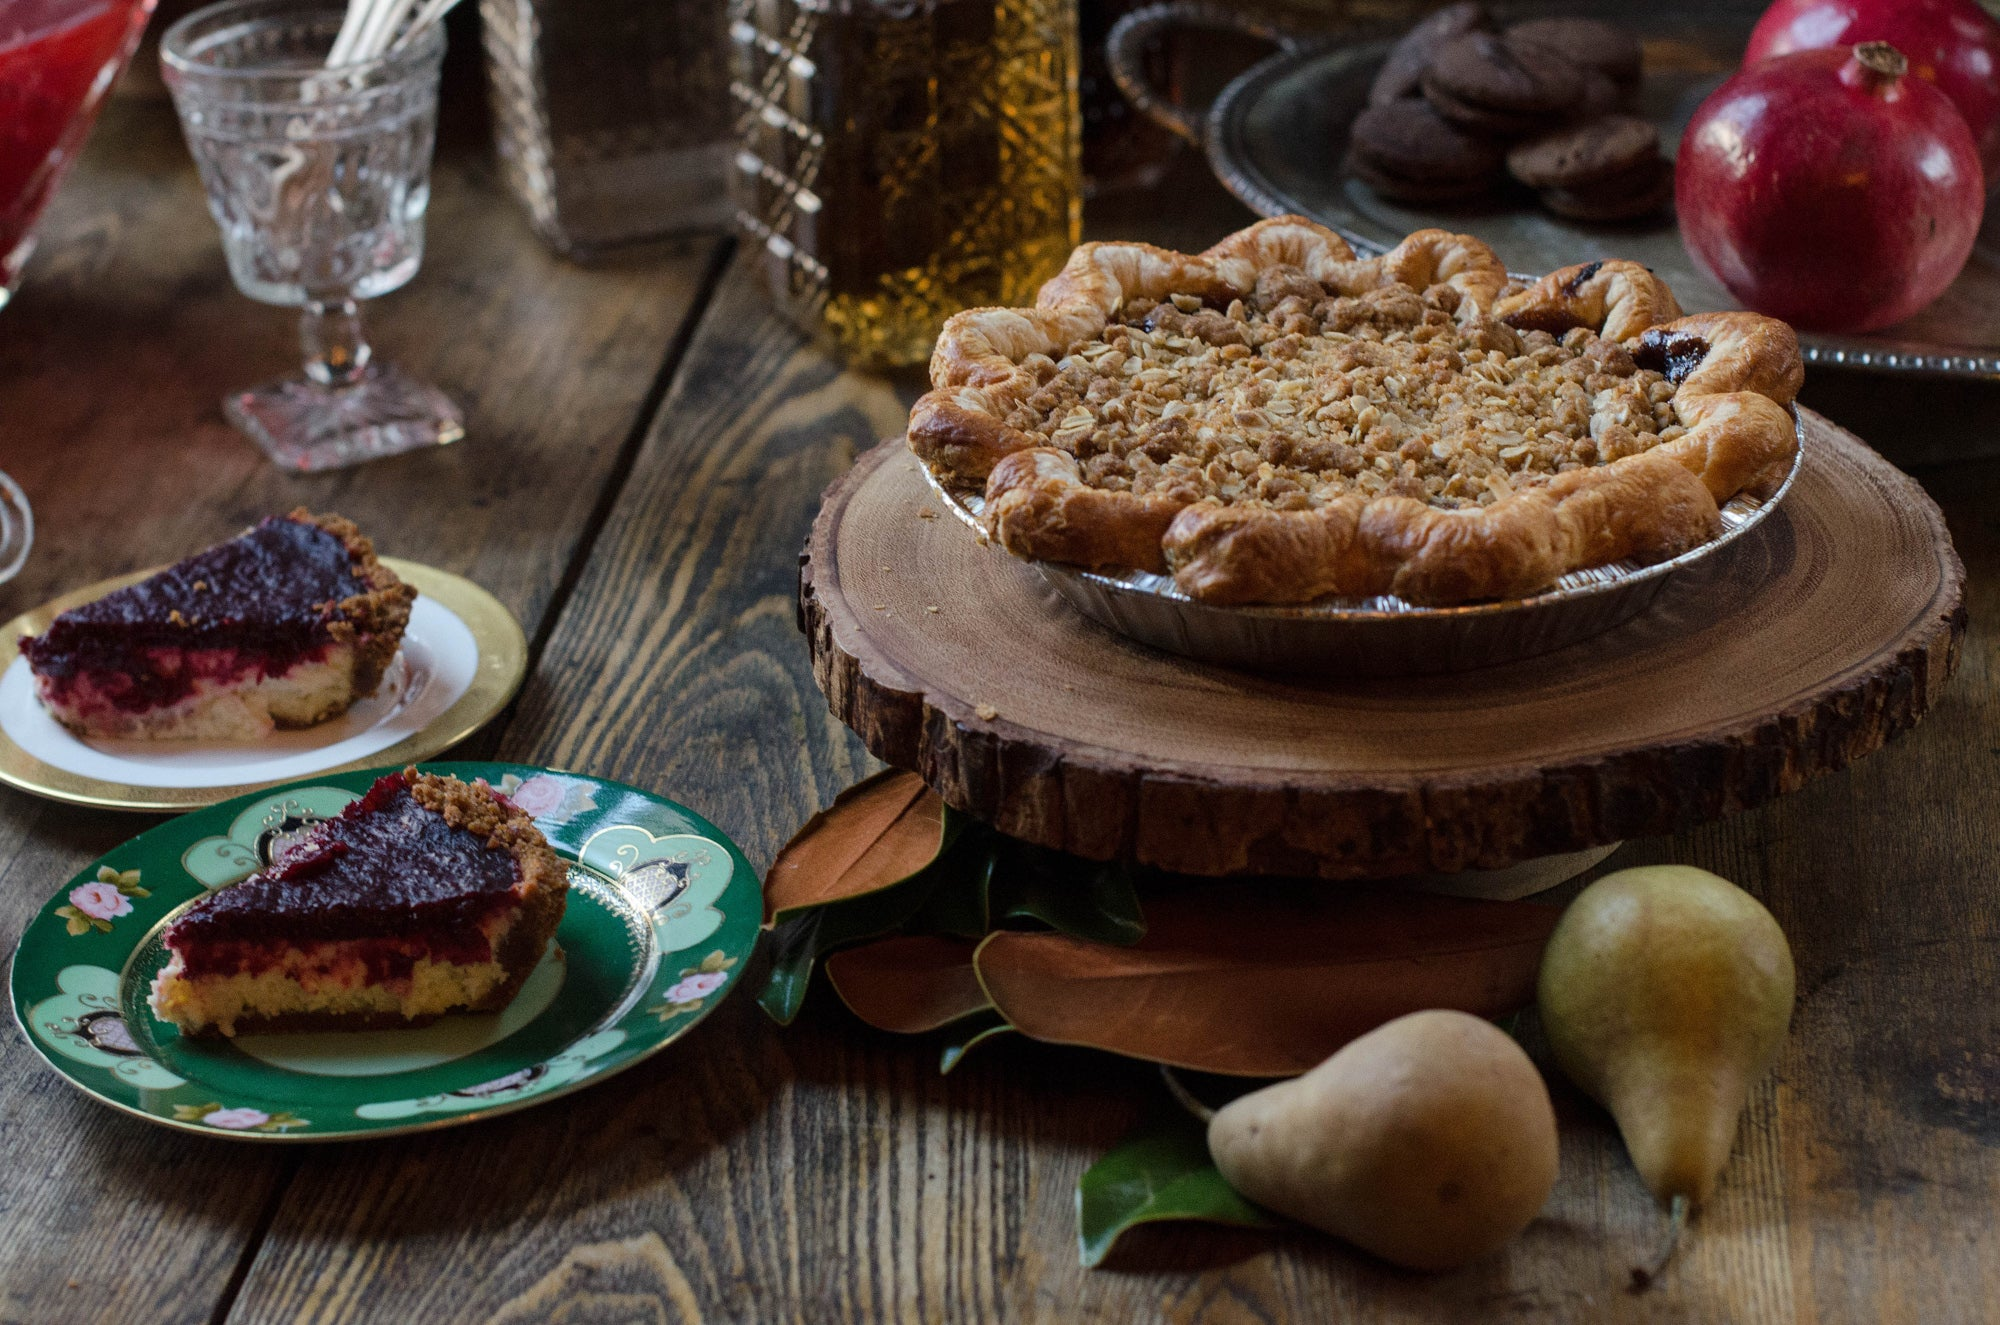 This rustic winter wedding dessert table with pie and fruit would also be great for a holiday gathering